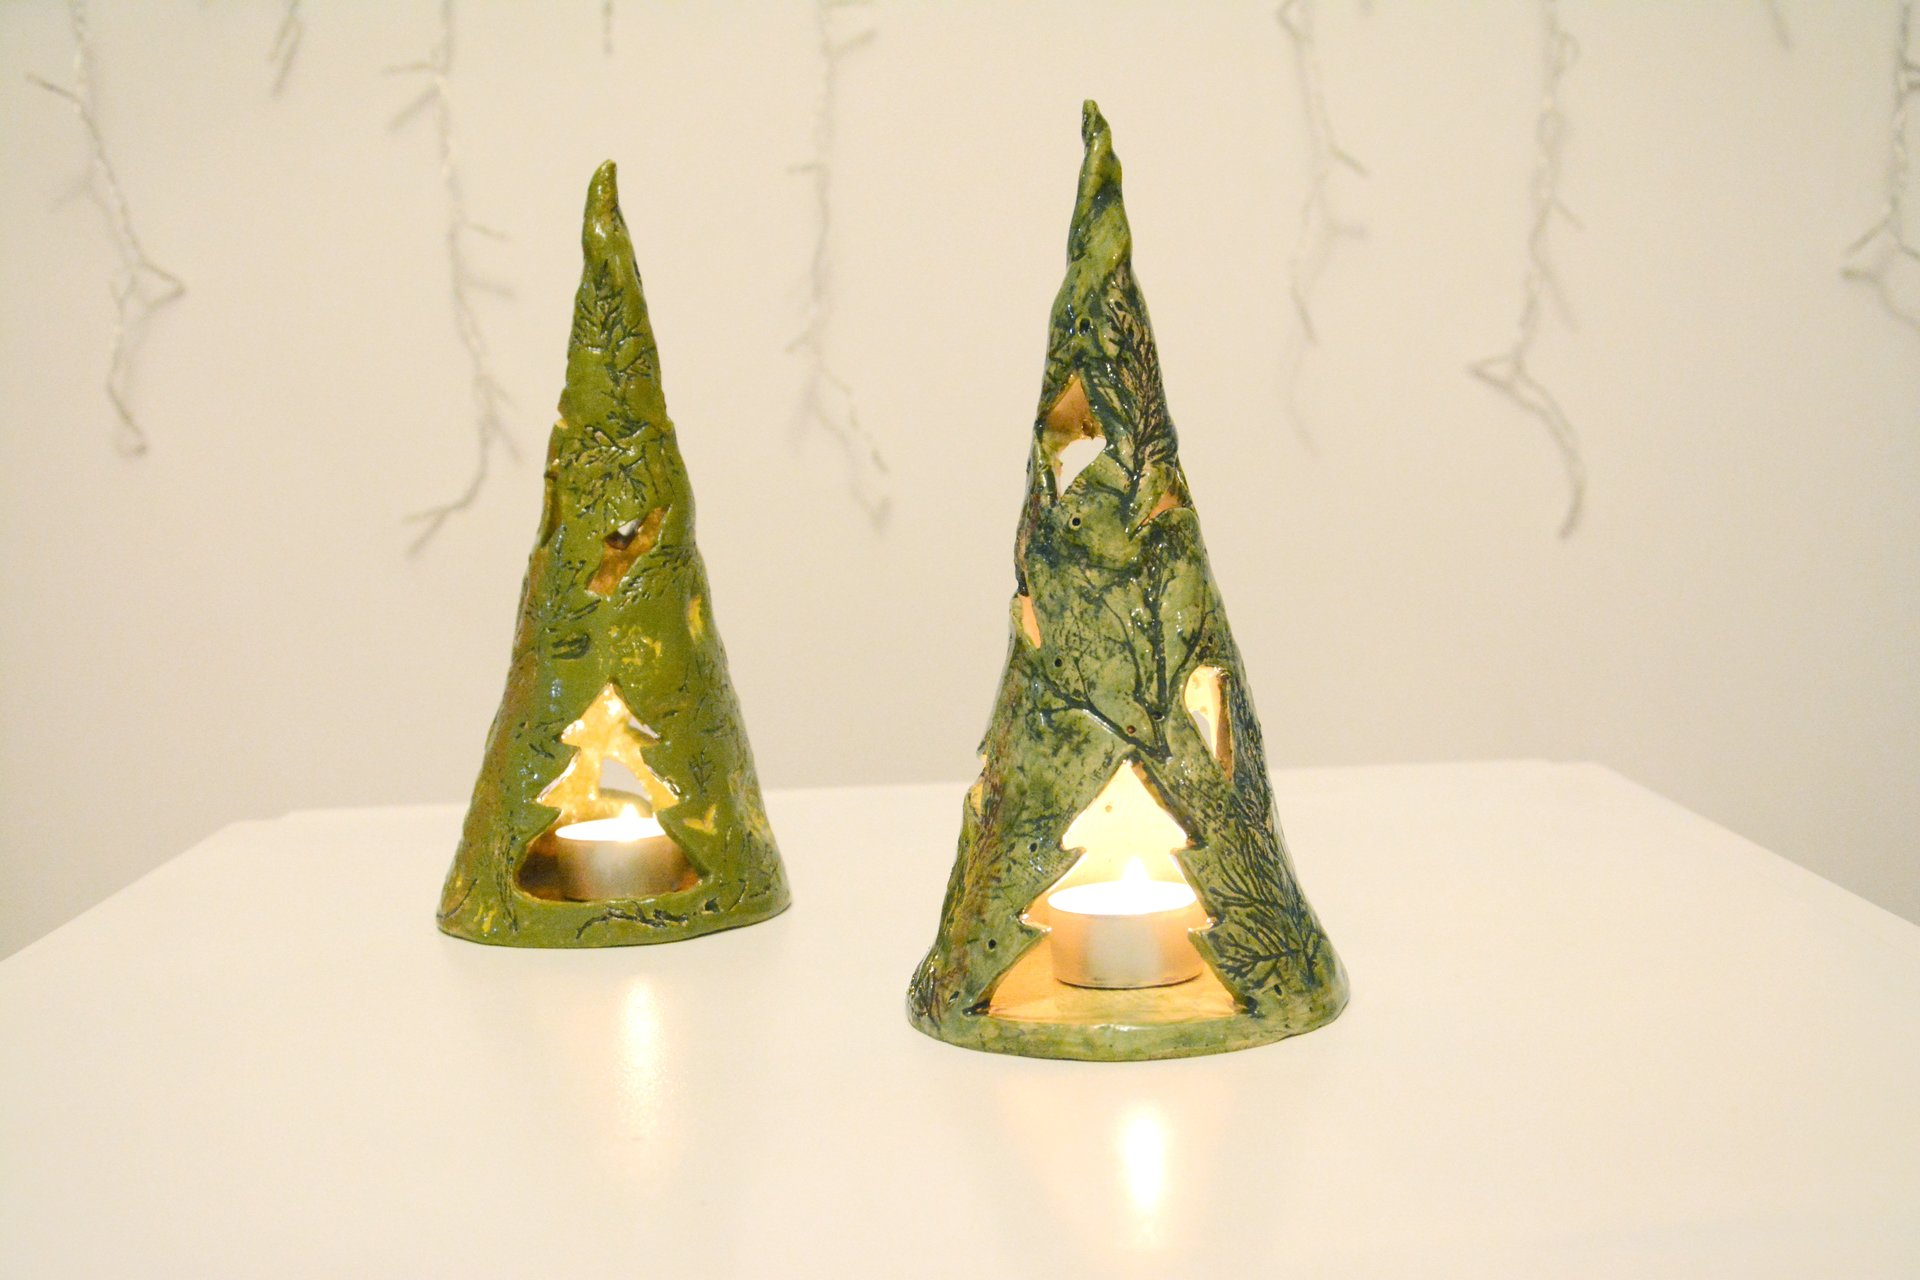 Eco style Christmas tree - Ceramic Candl-holders, height - 24 cm, diameter - 7 cm, photo 2 of 2.